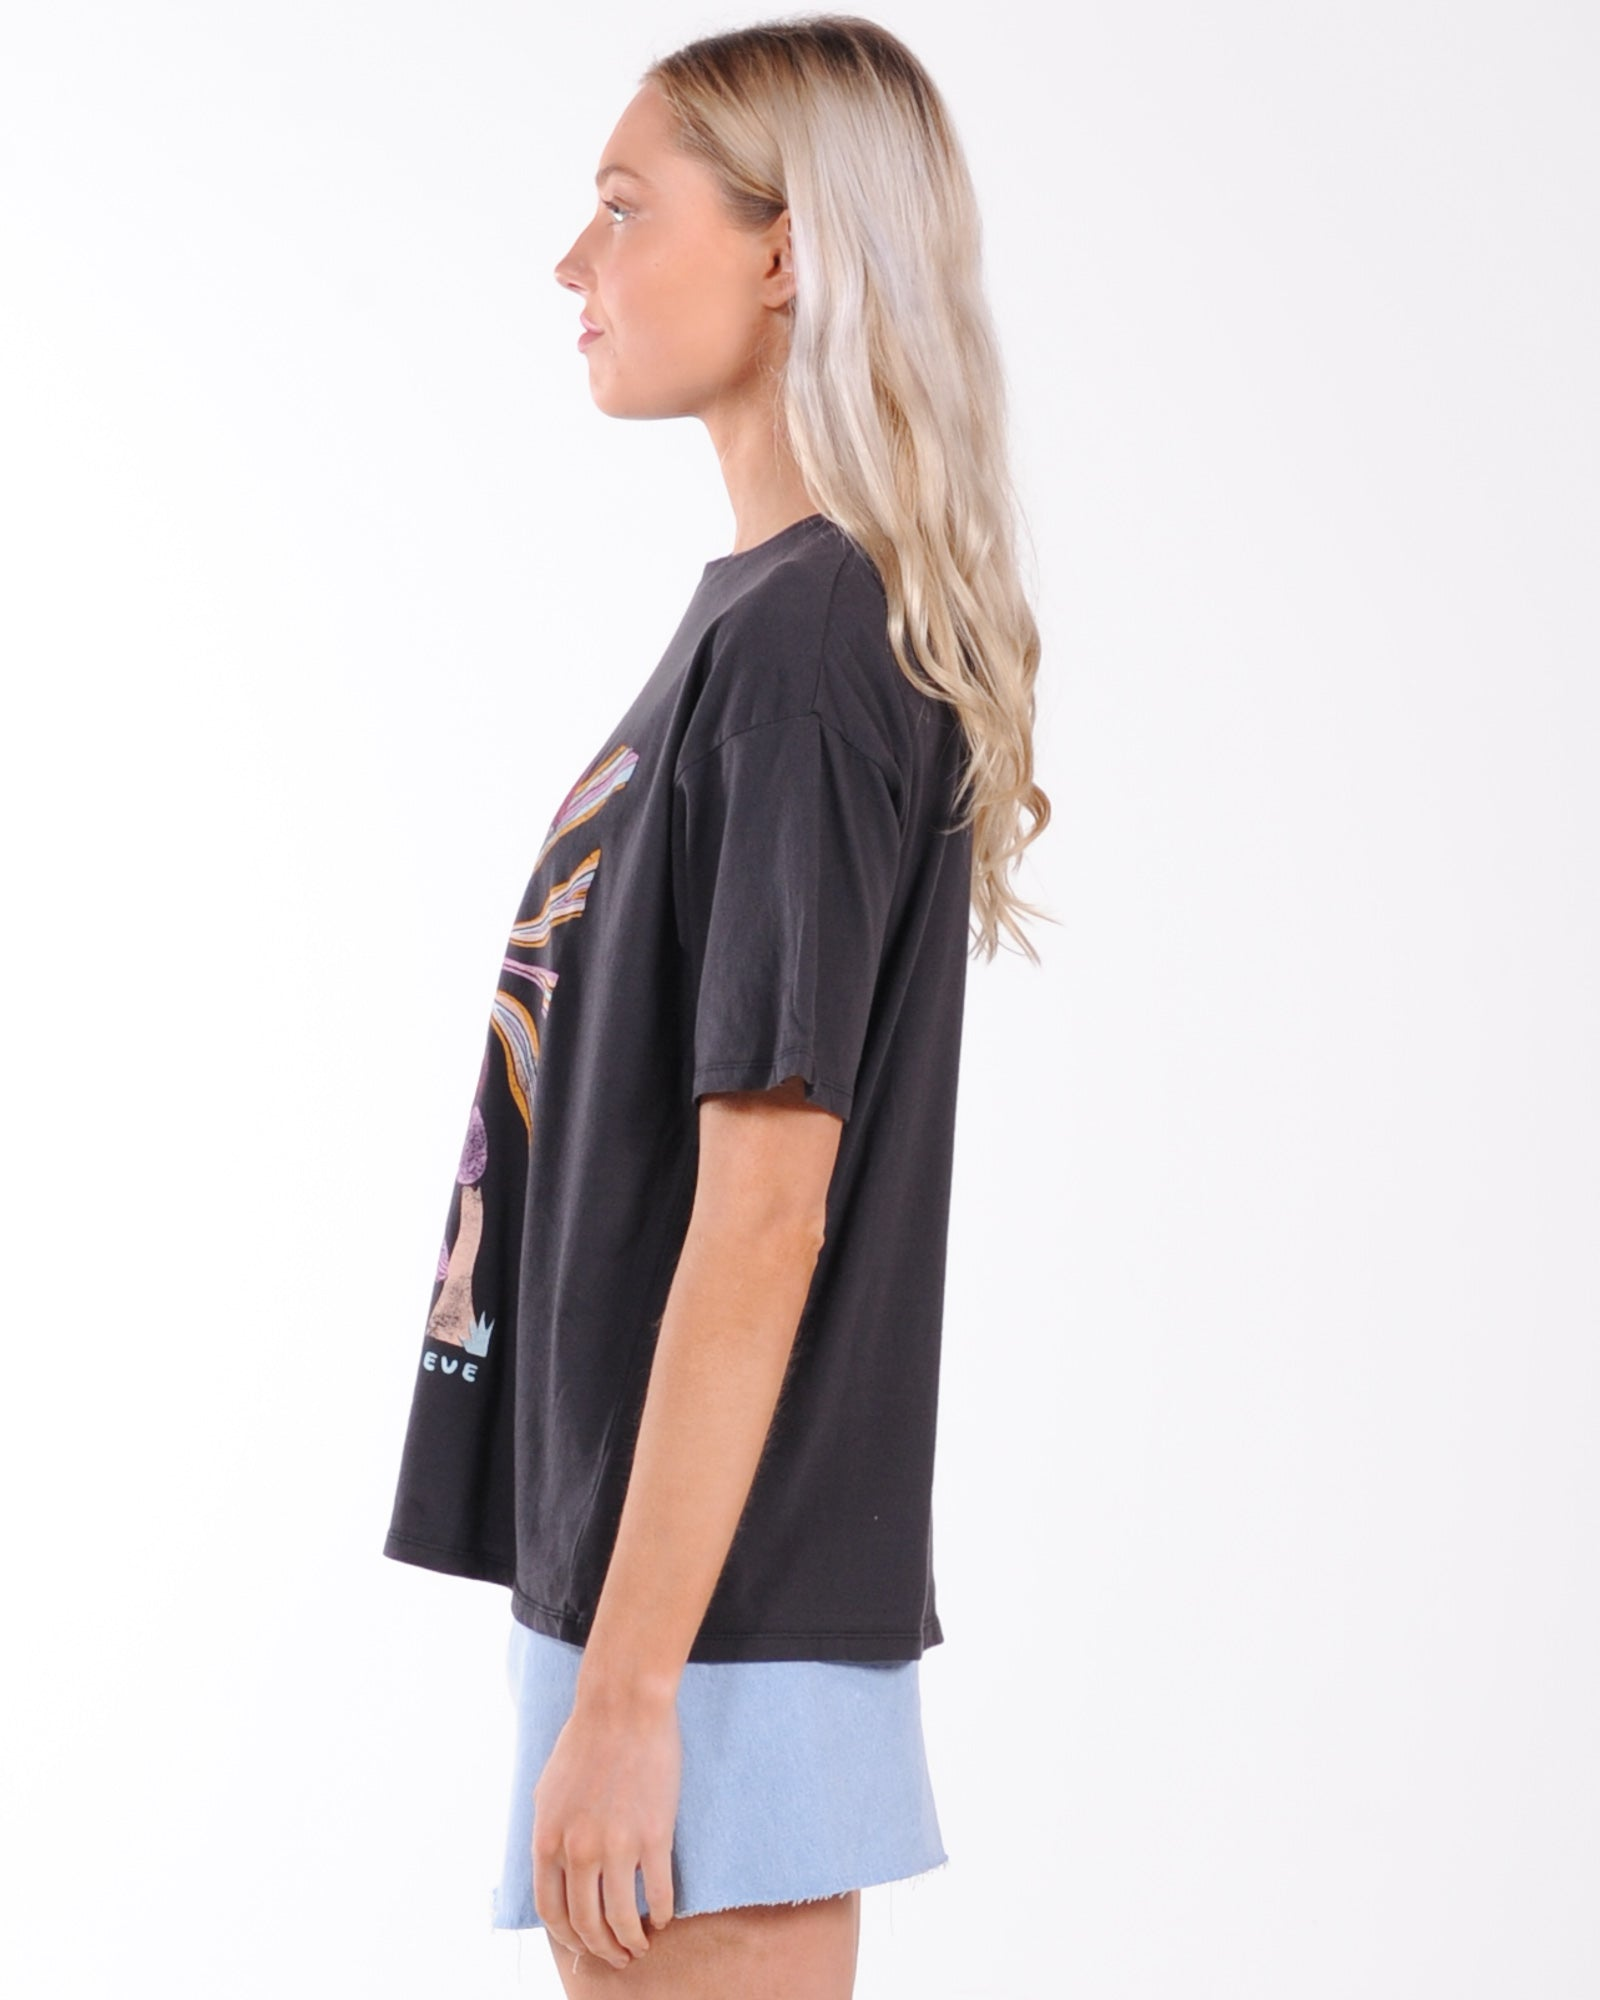 All About Eve Field Of Dreams Tee - Faded Black